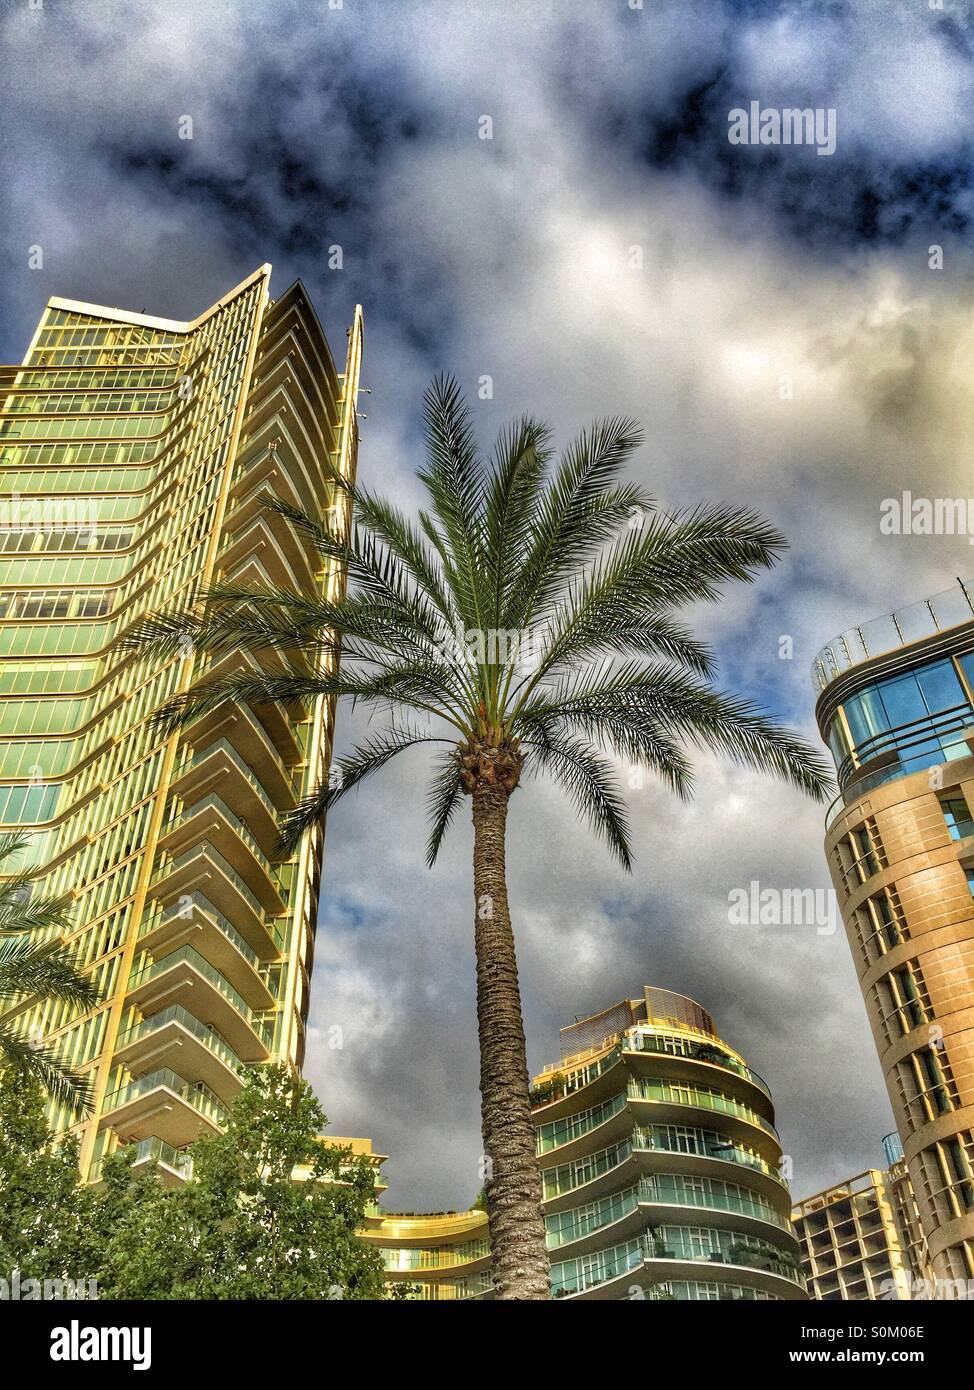 Palmier Beyrouth Liban Photo Stock